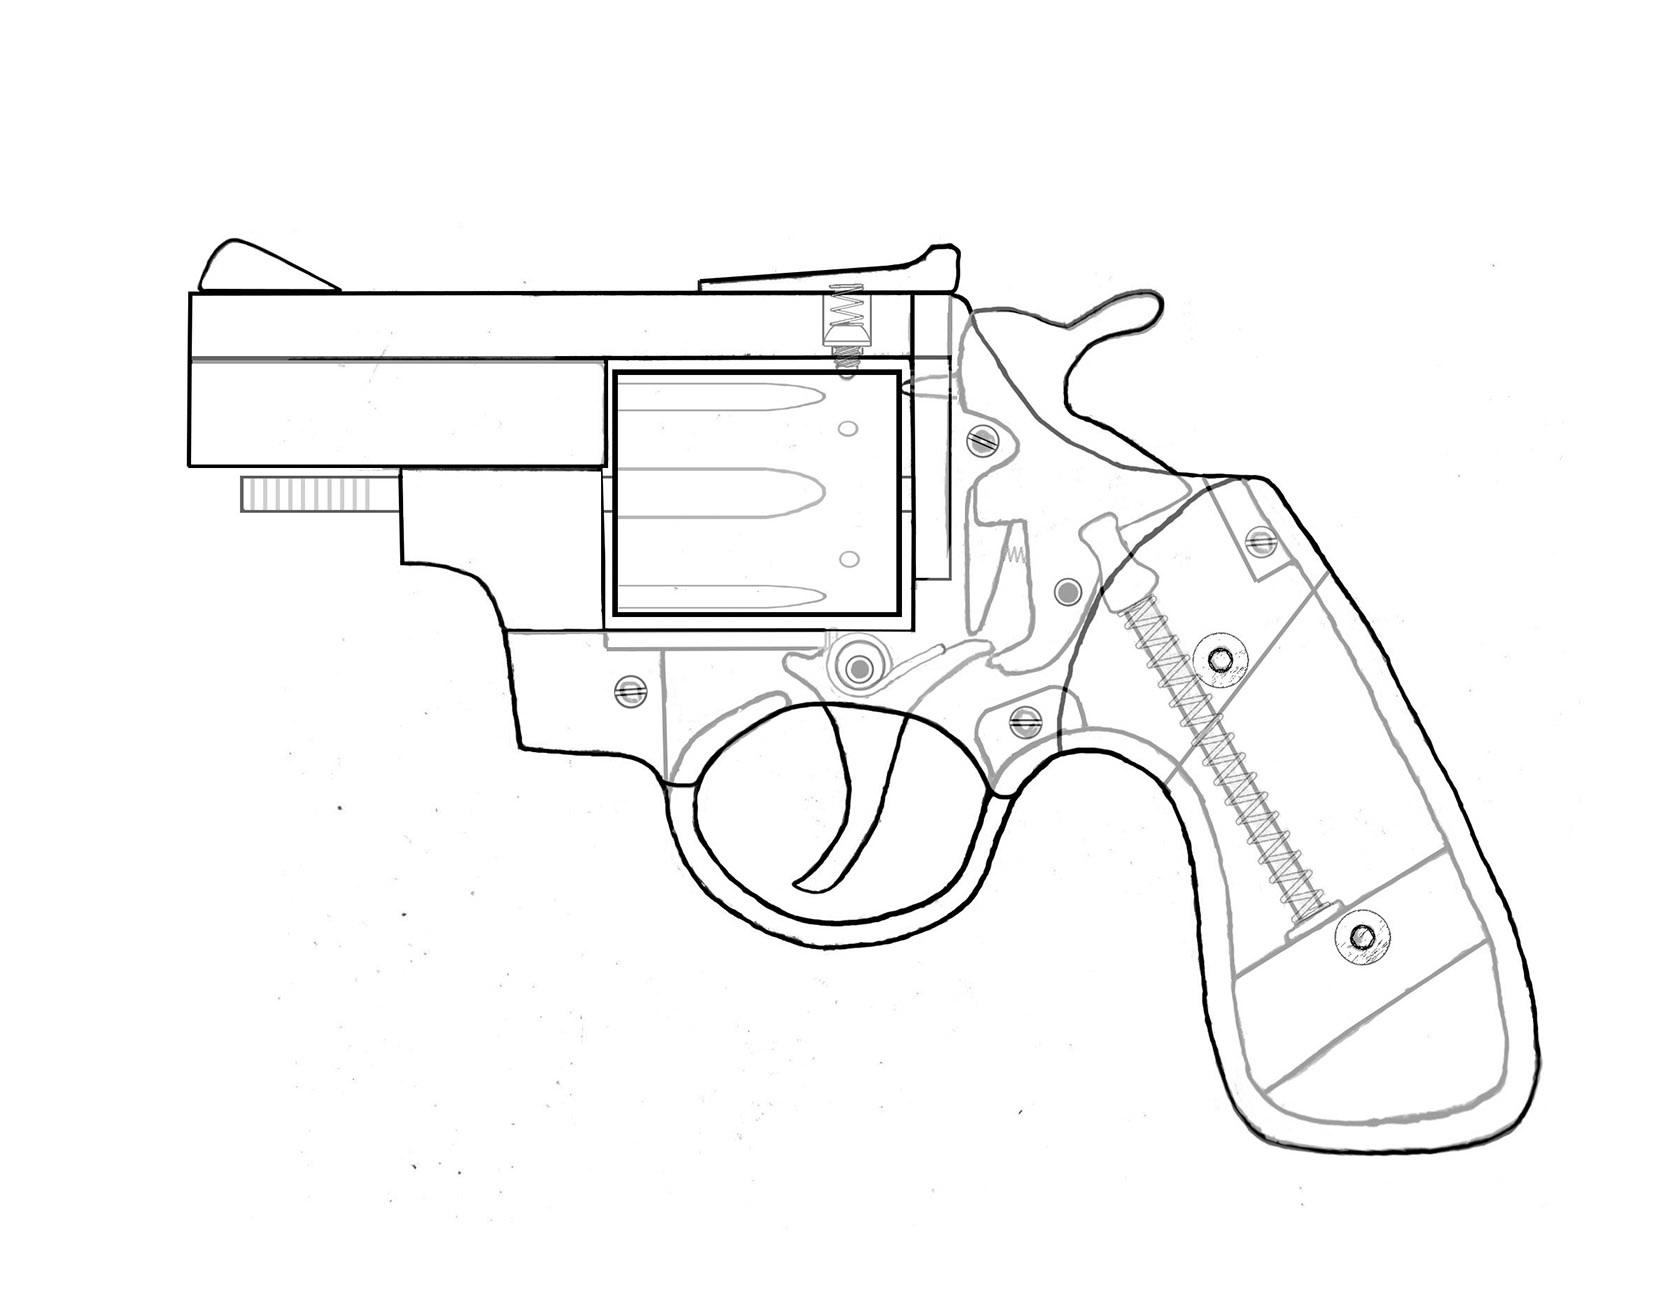 22 Pistol Plans Related Keywords Suggestions